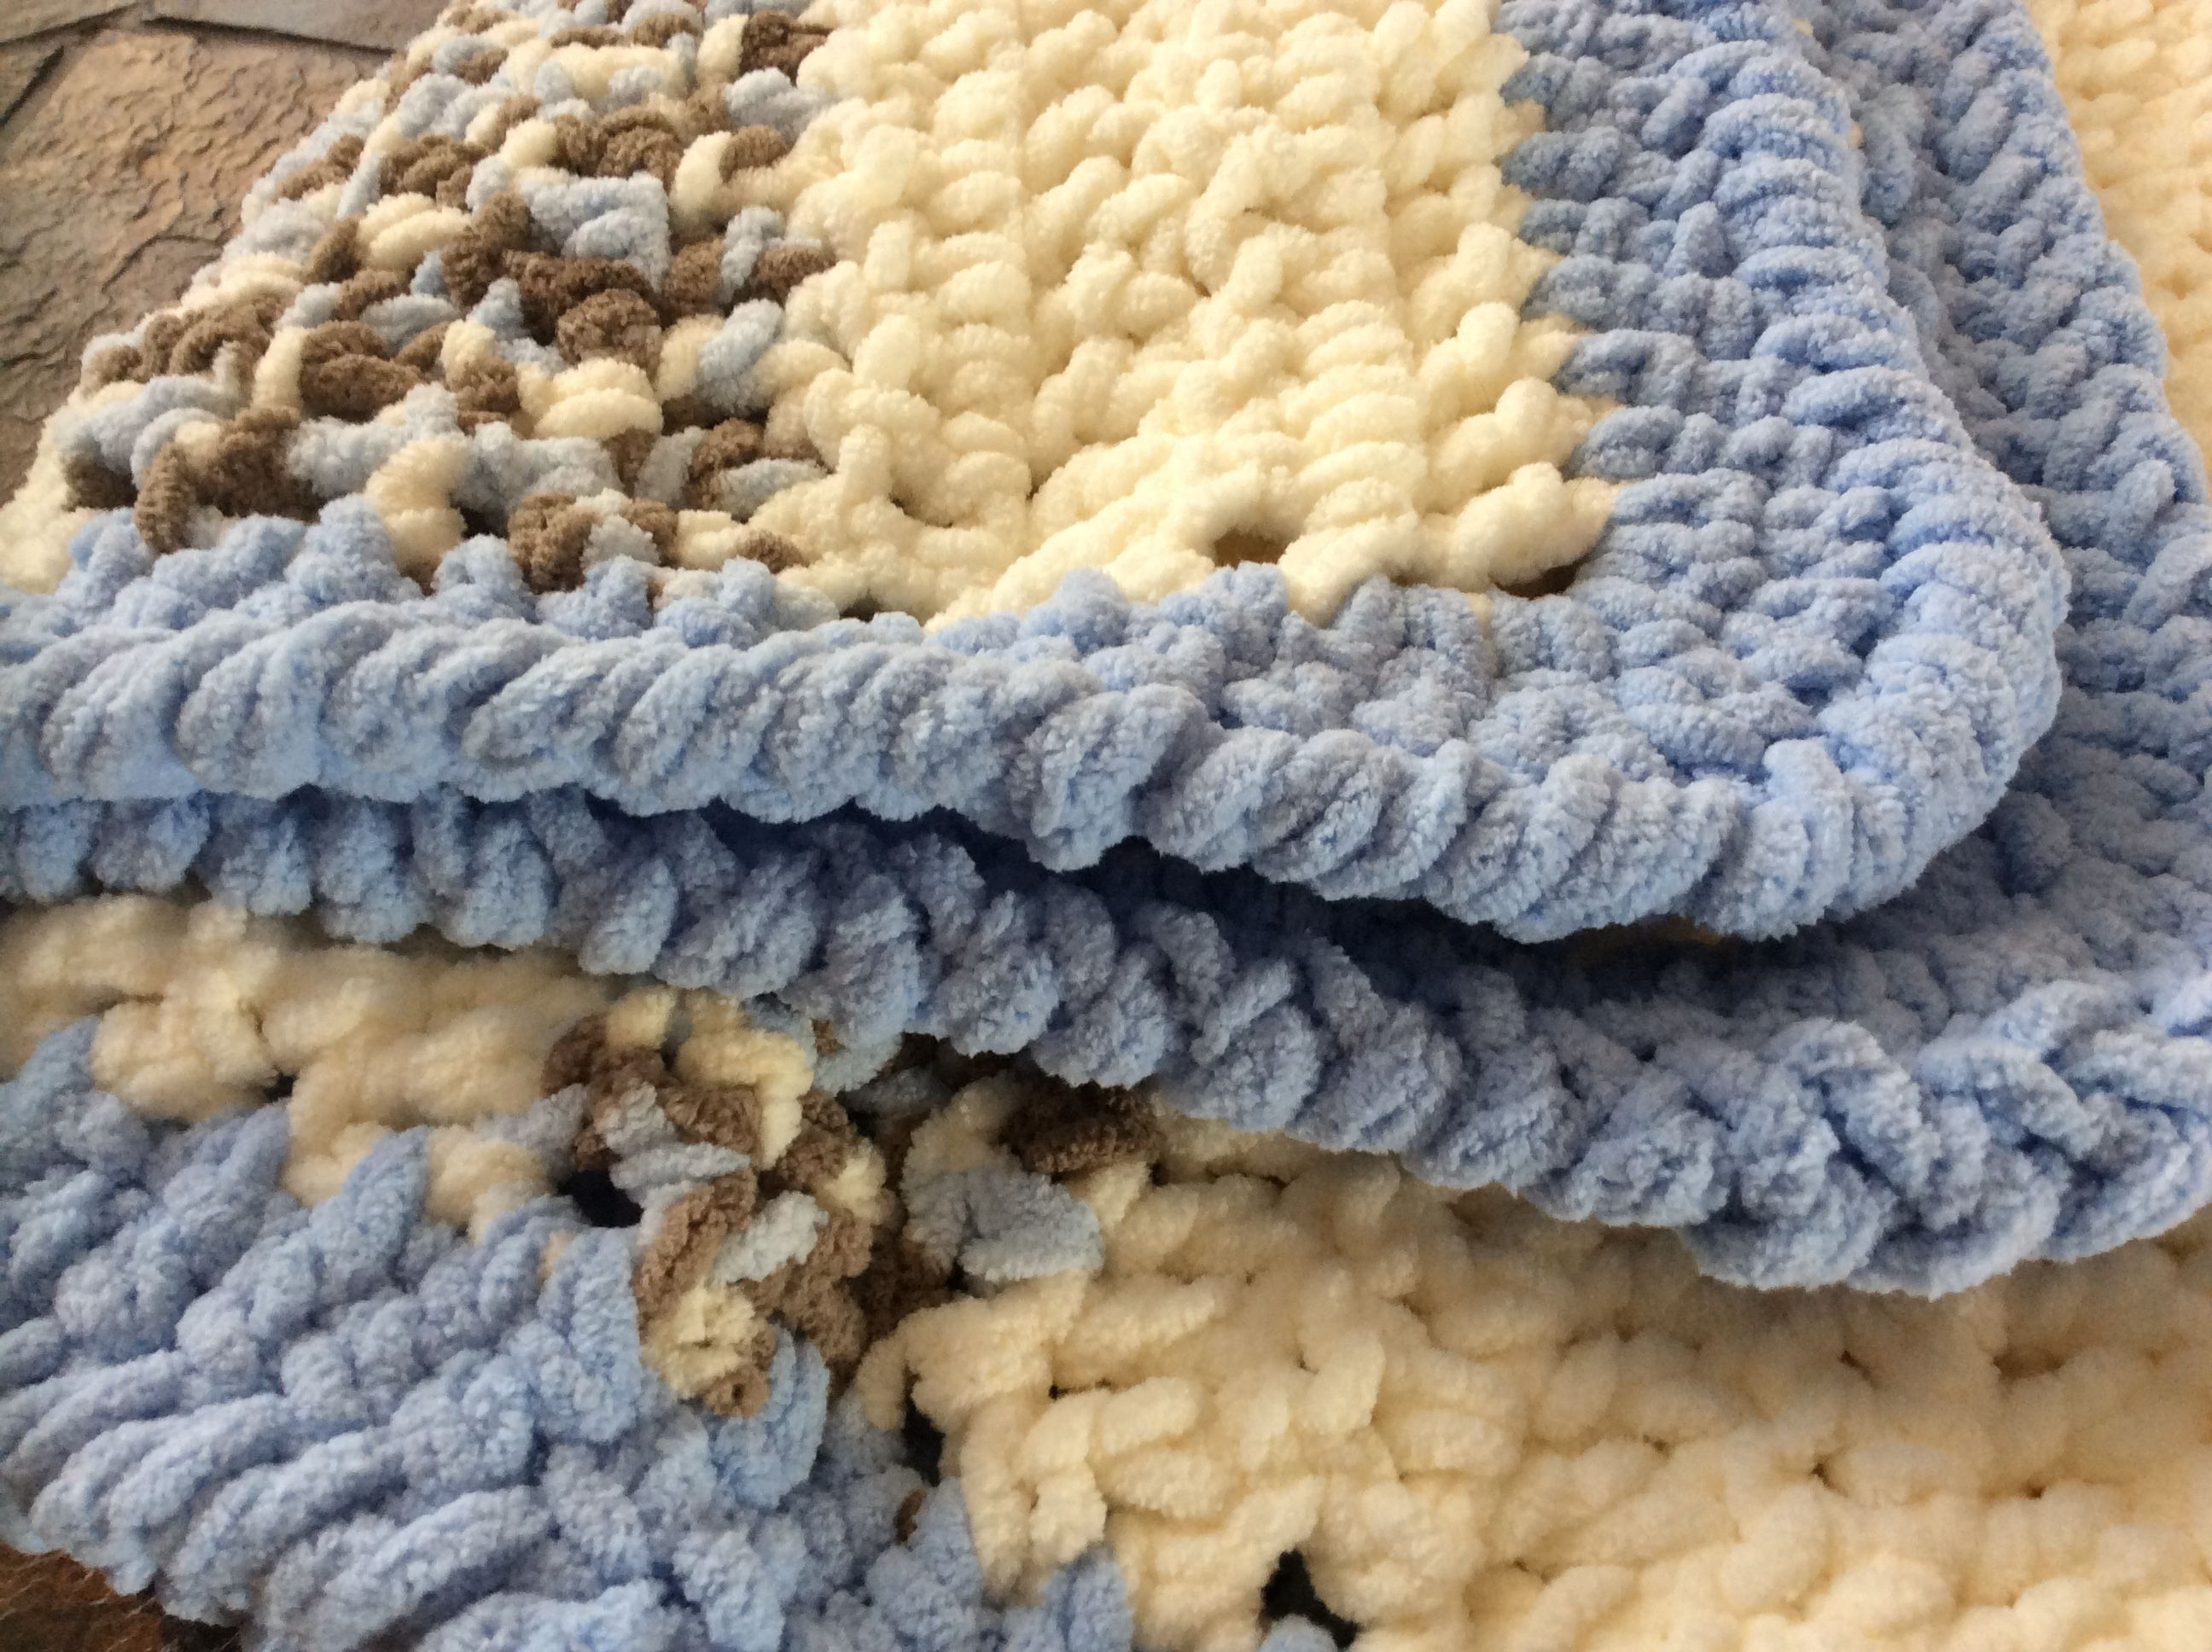 Yarn for Crochet Blanket Best Of Crochet Blanket My son Wanted A Very Cosy Blanket Used Of Amazing 41 Photos Yarn for Crochet Blanket